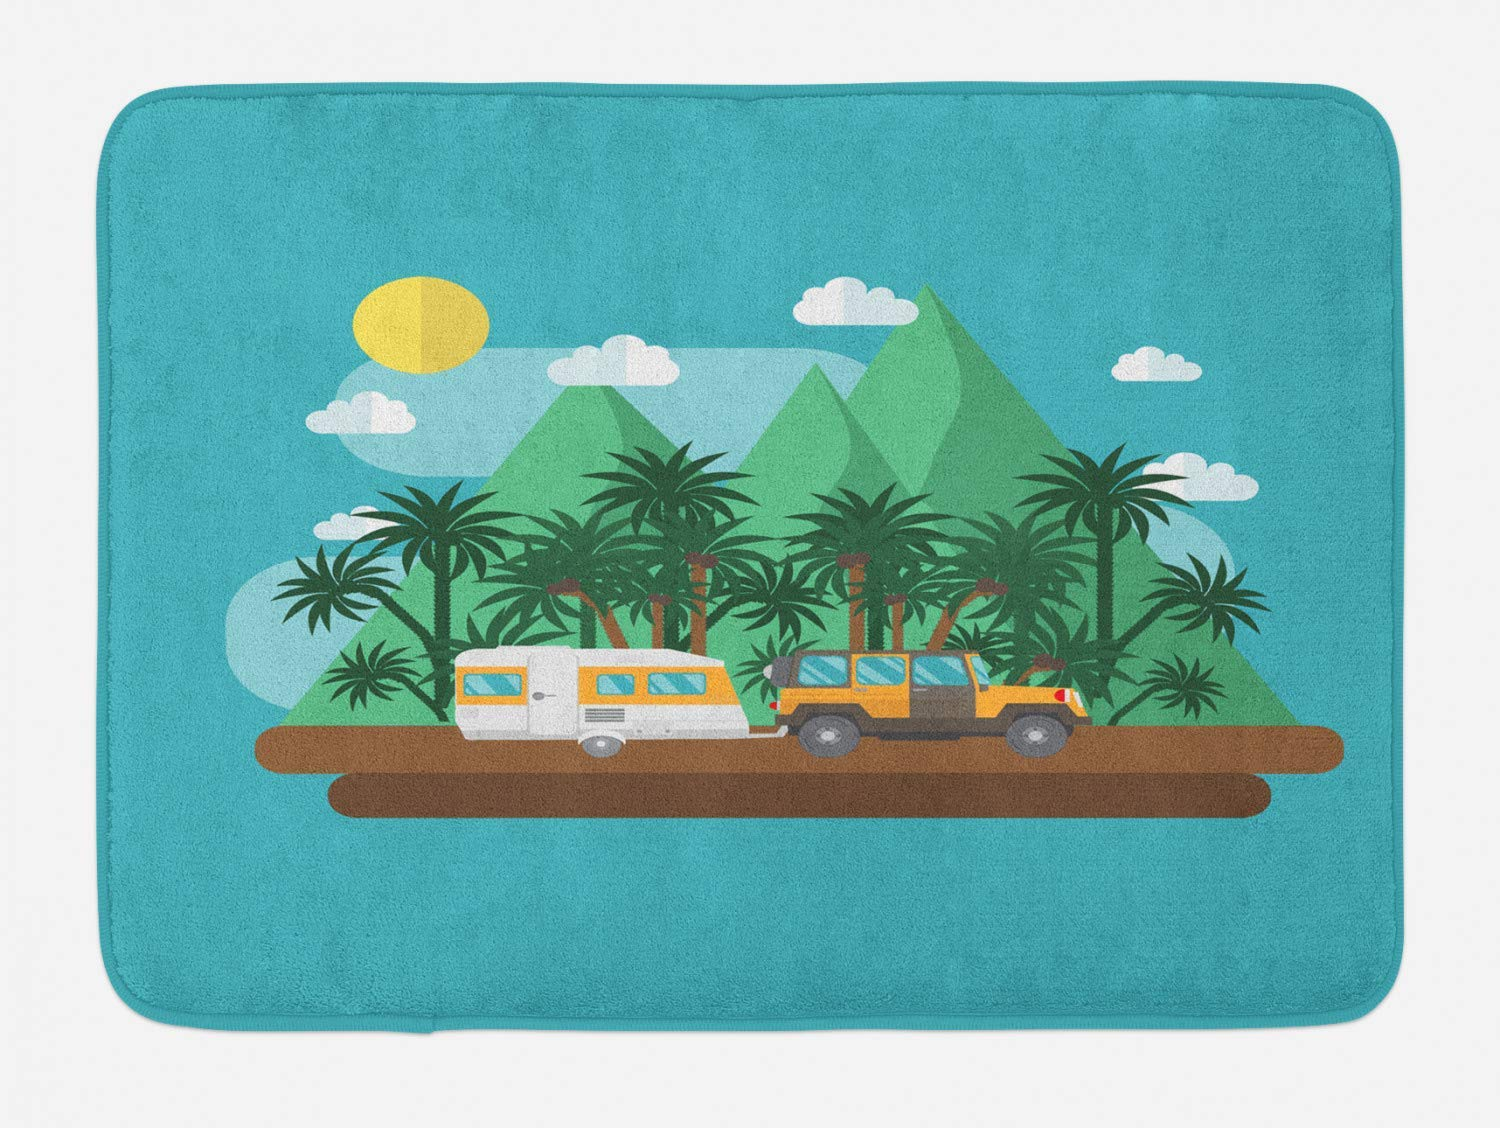 Plush Bathroom Decor Mat with Non Slip Backing RV Bath Mat 31.5 W X 19.68 L Inches Multicolor Traveler SUV in The Mountains with Exotic Palm Trees Flat Design Outdoors Adventure